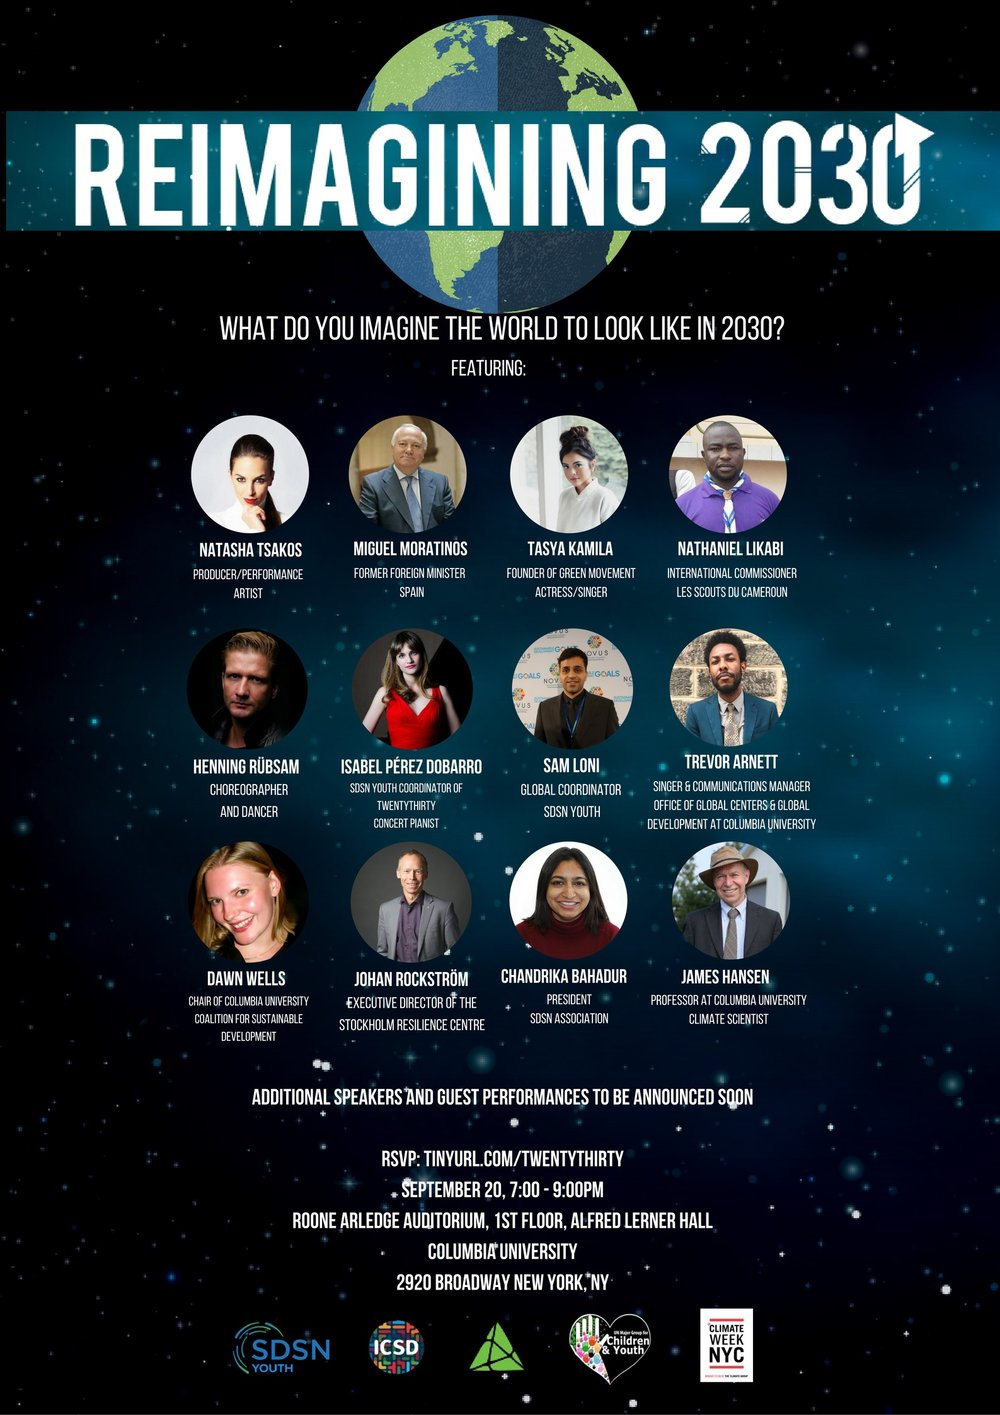 Reimagining 2030 event at Columbia University (September 2016)